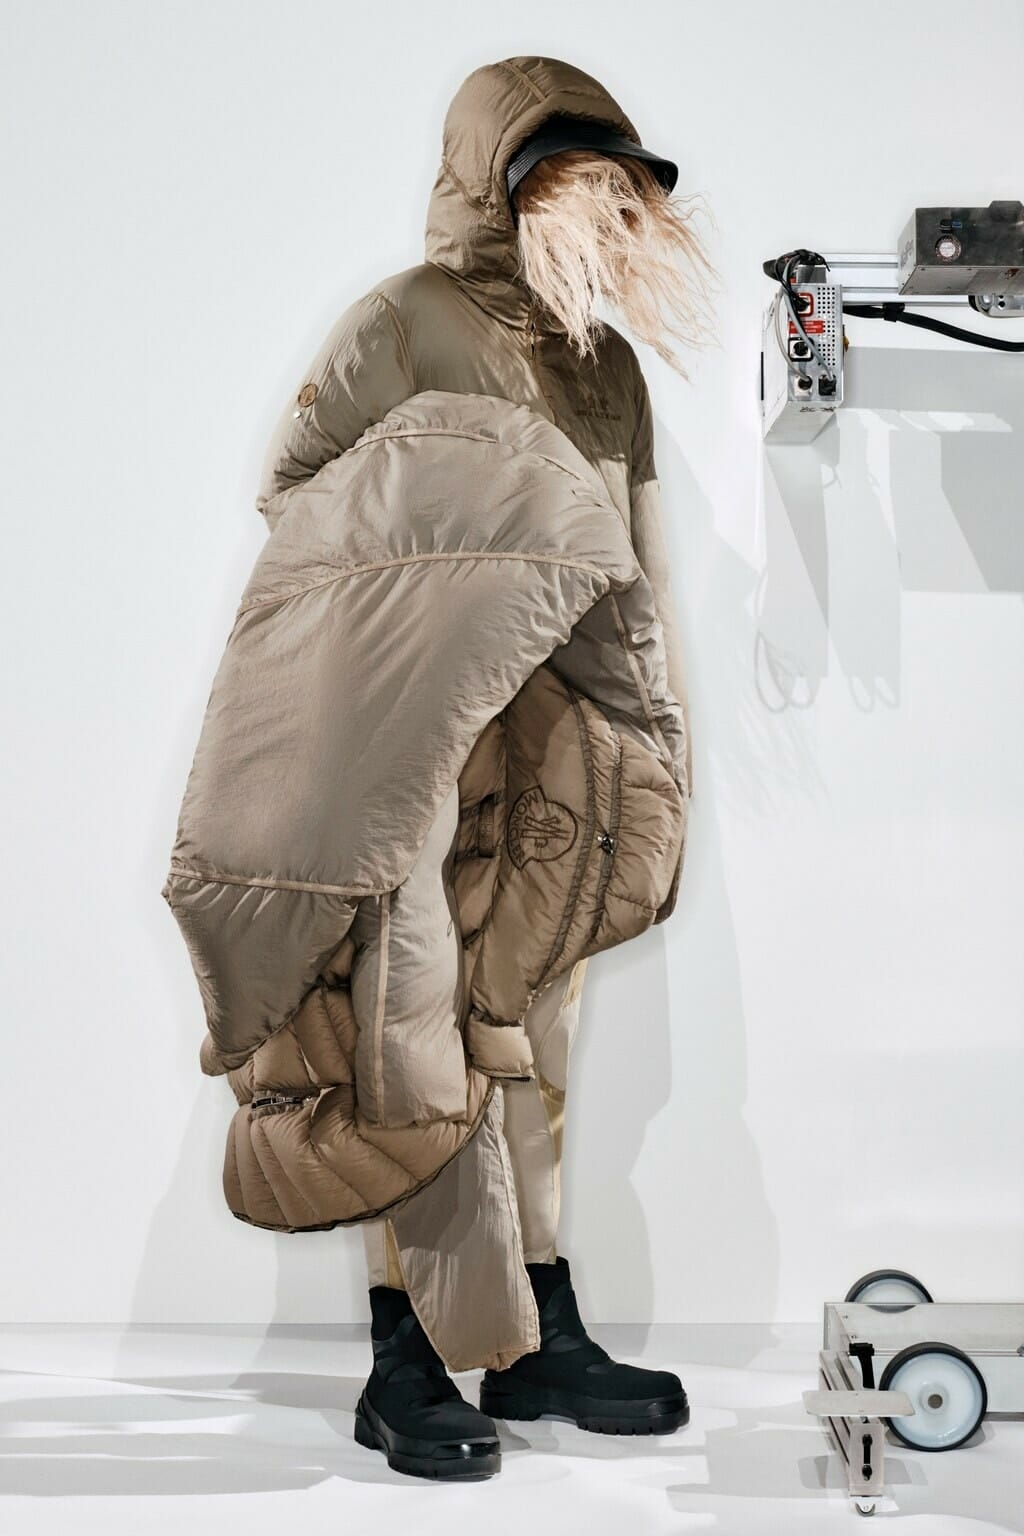 Moncler 6 1017 Alyx 9SM Fall-Winter 2020-2021 Milan. RUNWAY MAGAZINE ® Collections. RUNWAY NOW / RUNWAY NEW